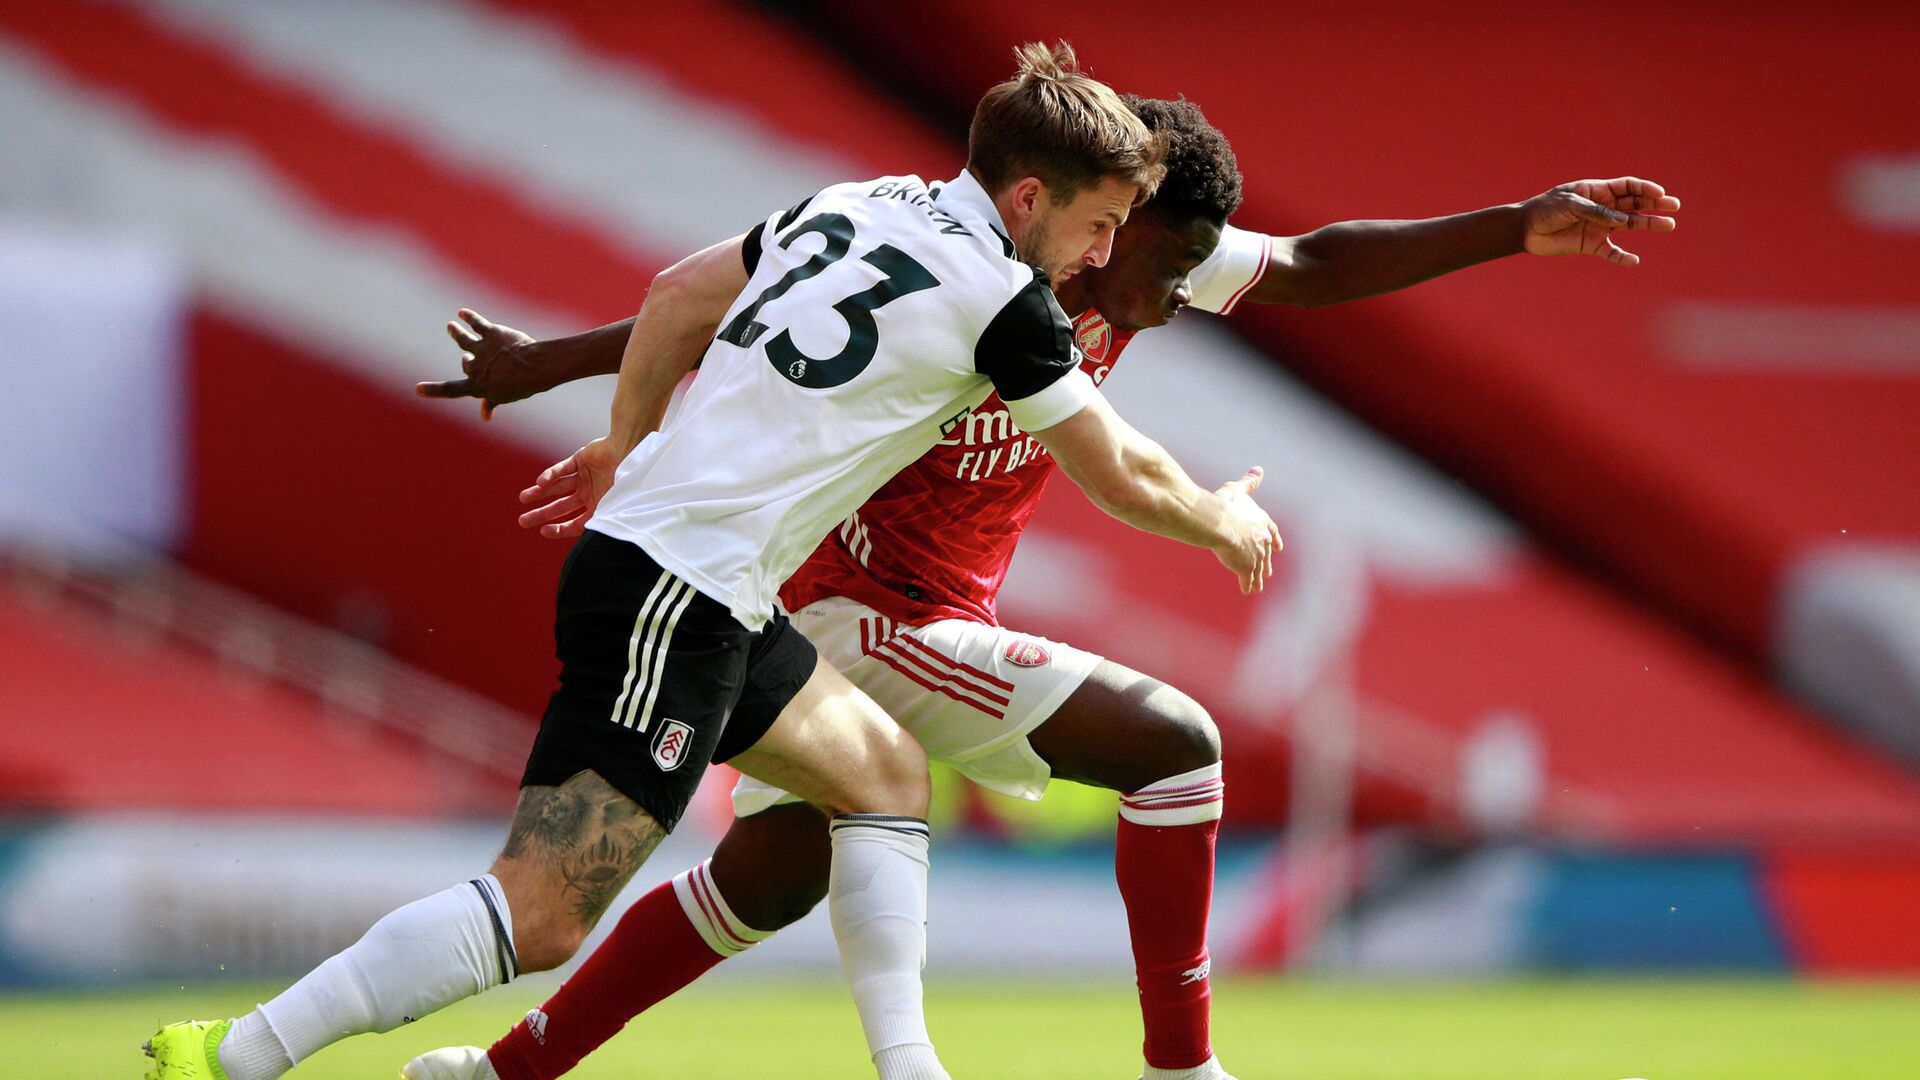 Fulham's English defender Joe Bryan (L) vies with Arsenal's English striker Bukayo Saka (R) during the English Premier League football match between Arsenal and Fulham at the Emirates Stadium in London on April 18, 2021. (Photo by Ian Walton / POOL / AFP) / RESTRICTED TO EDITORIAL USE. No use with unauthorized audio, video, data, fixture lists, club/league logos or 'live' services. Online in-match use limited to 120 images. An additional 40 images may be used in extra time. No video emulation. Social media in-match use limited to 120 images. An additional 40 images may be used in extra time. No use in betting publications, games or single club/league/player publications. /  - РИА Новости, 1920, 18.04.2021